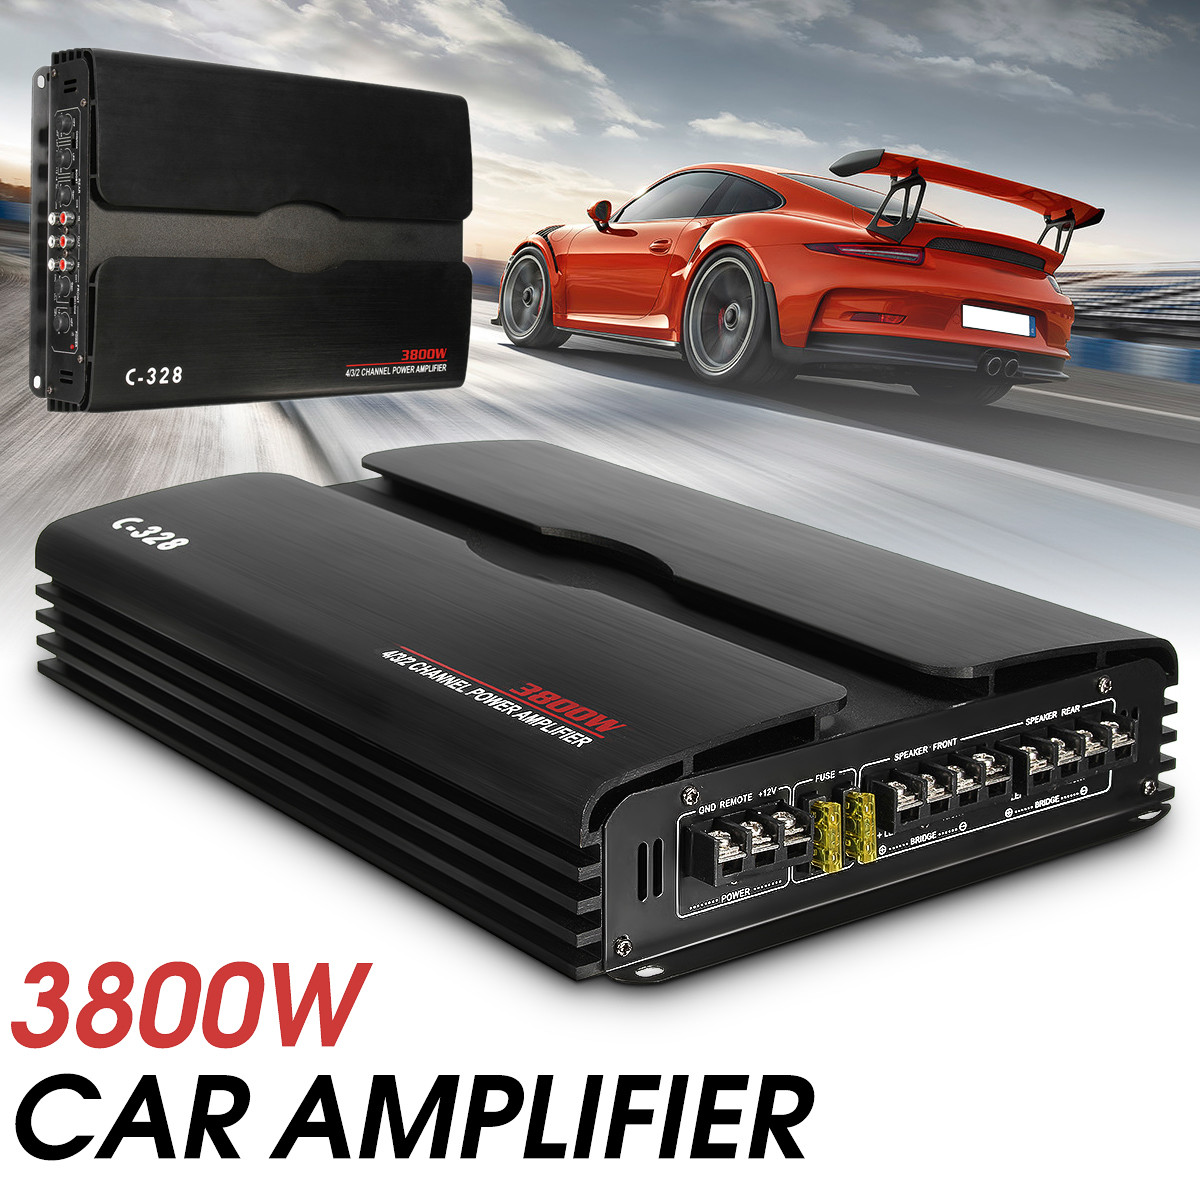 3800W Multichannel Aluminum Alloy Car Amplifier Speaker Powerful Car Audio Power Amplifier Subwoofer Car Truck Stereo Amplifier мультиварка скороварка коптильня ves sk a80